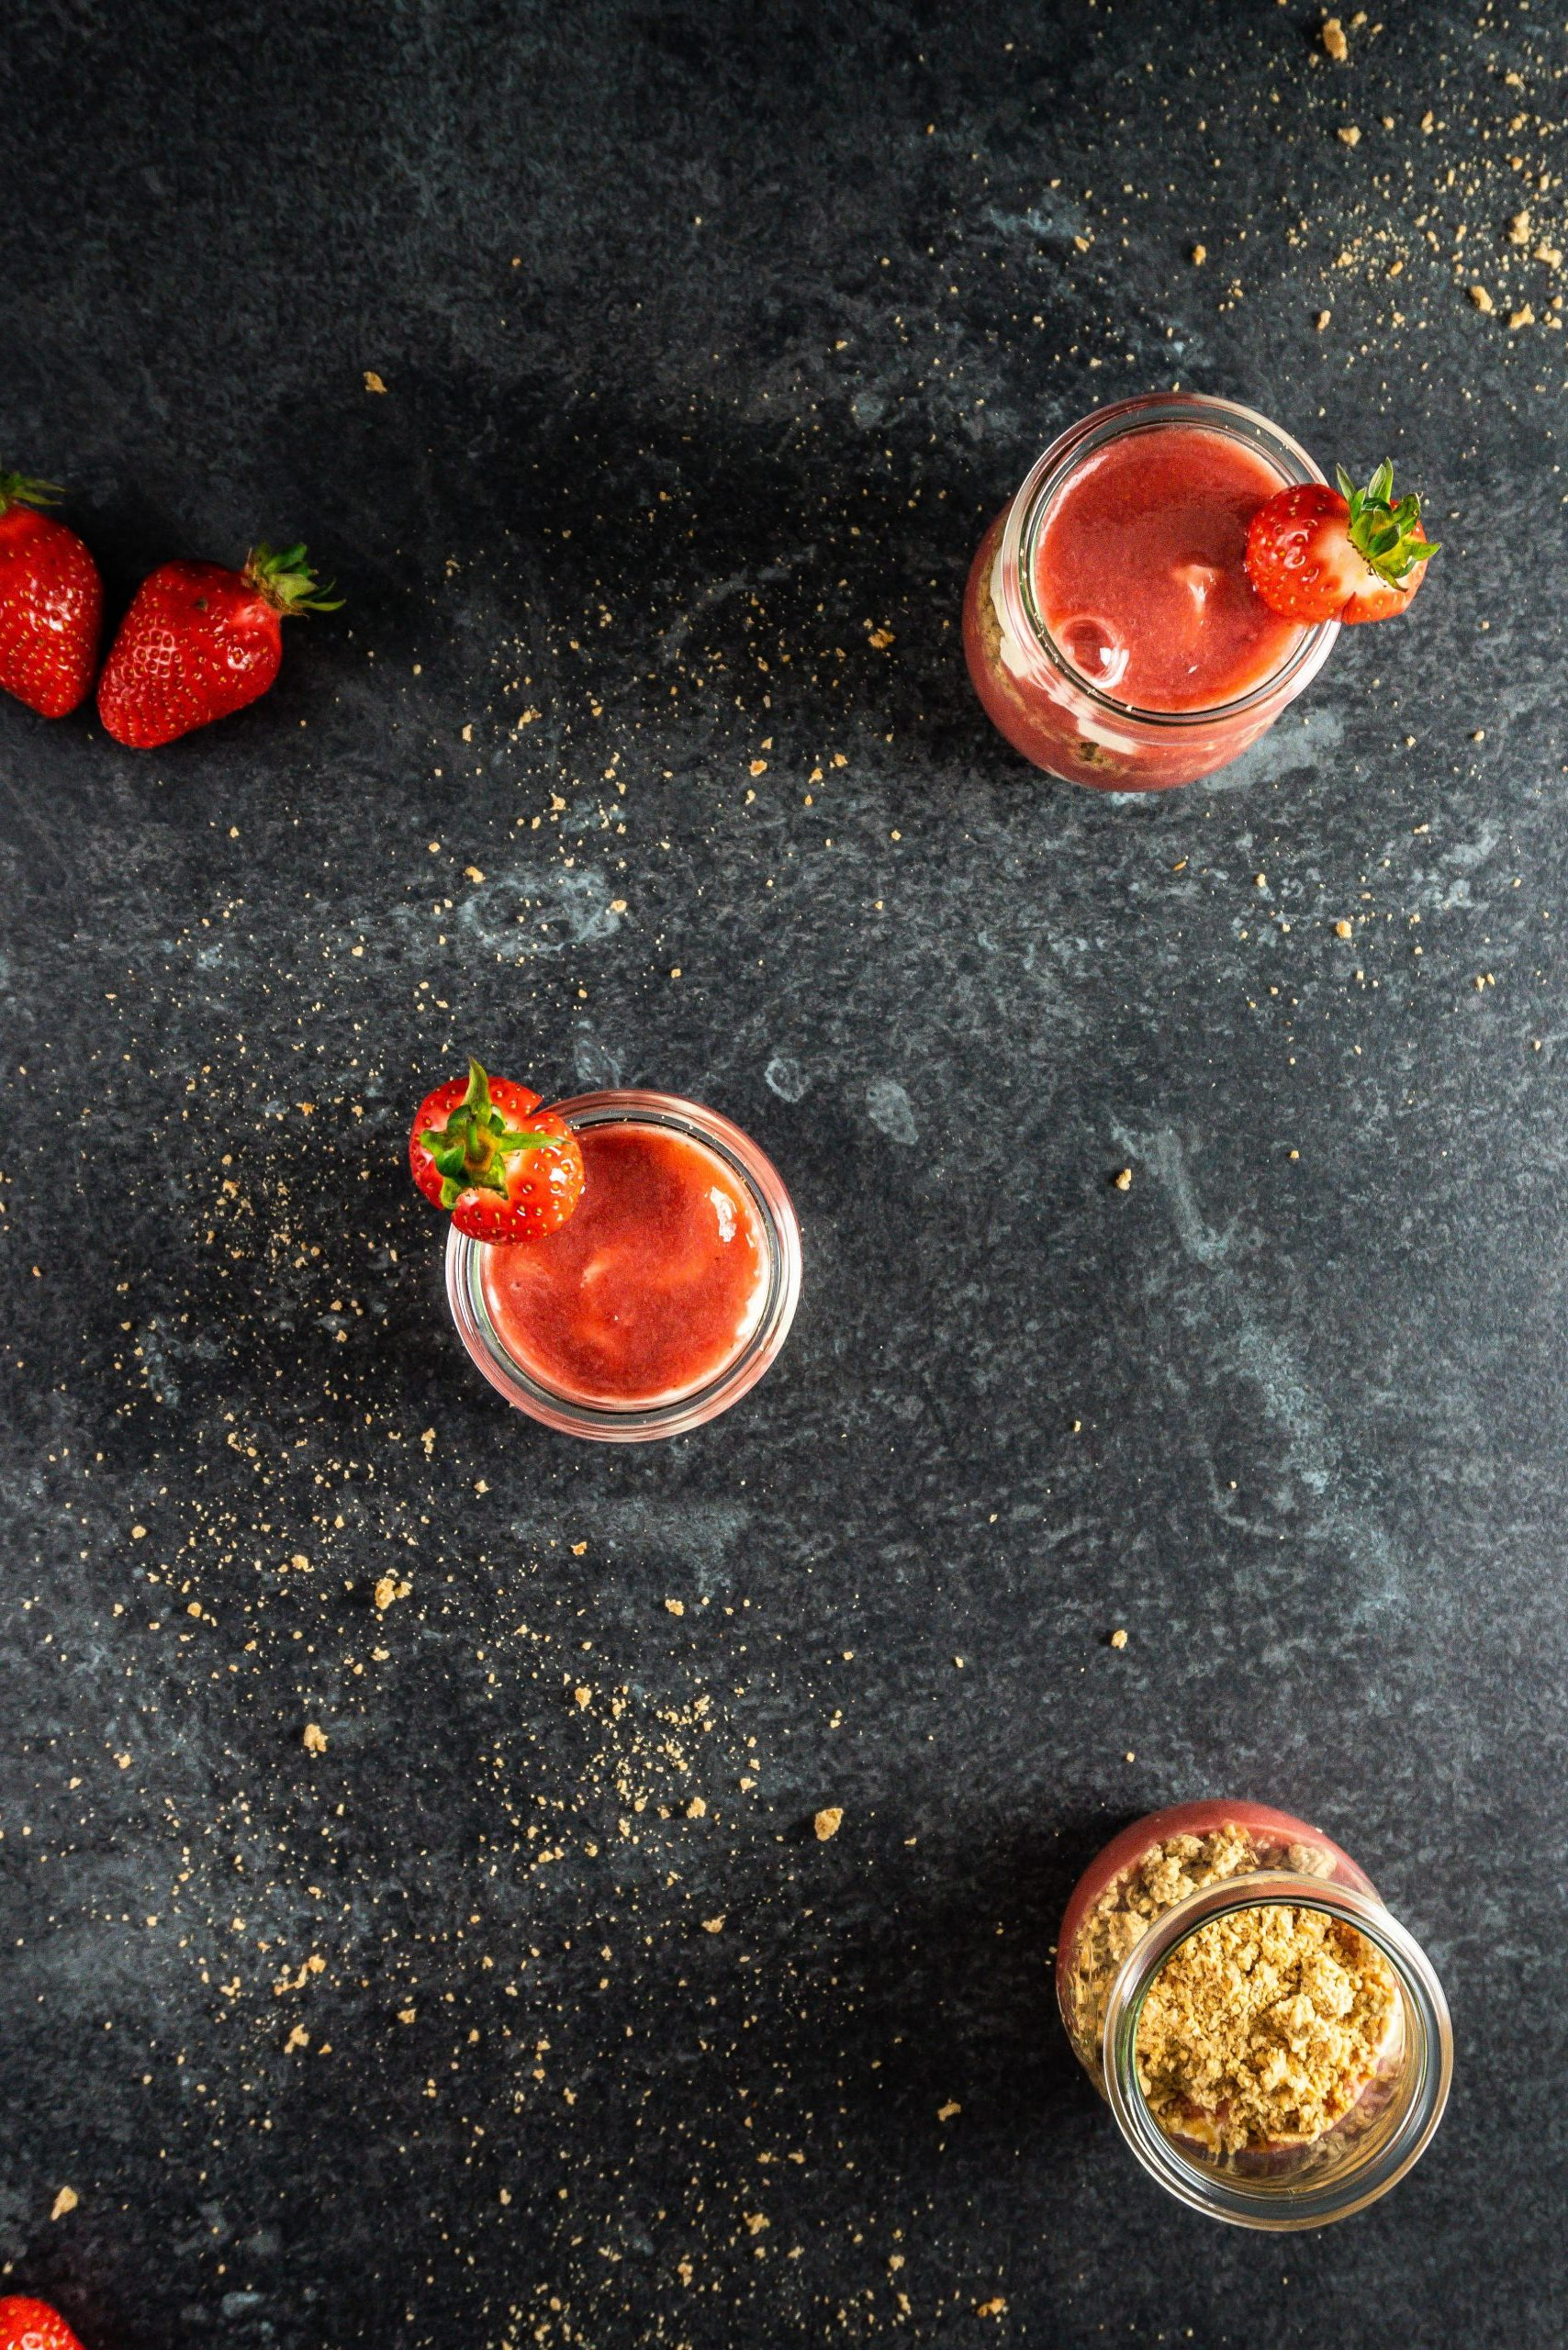 Three Strawberry Cheesecake Mini Desser Cups with decorated strawberries photographed on a dark background